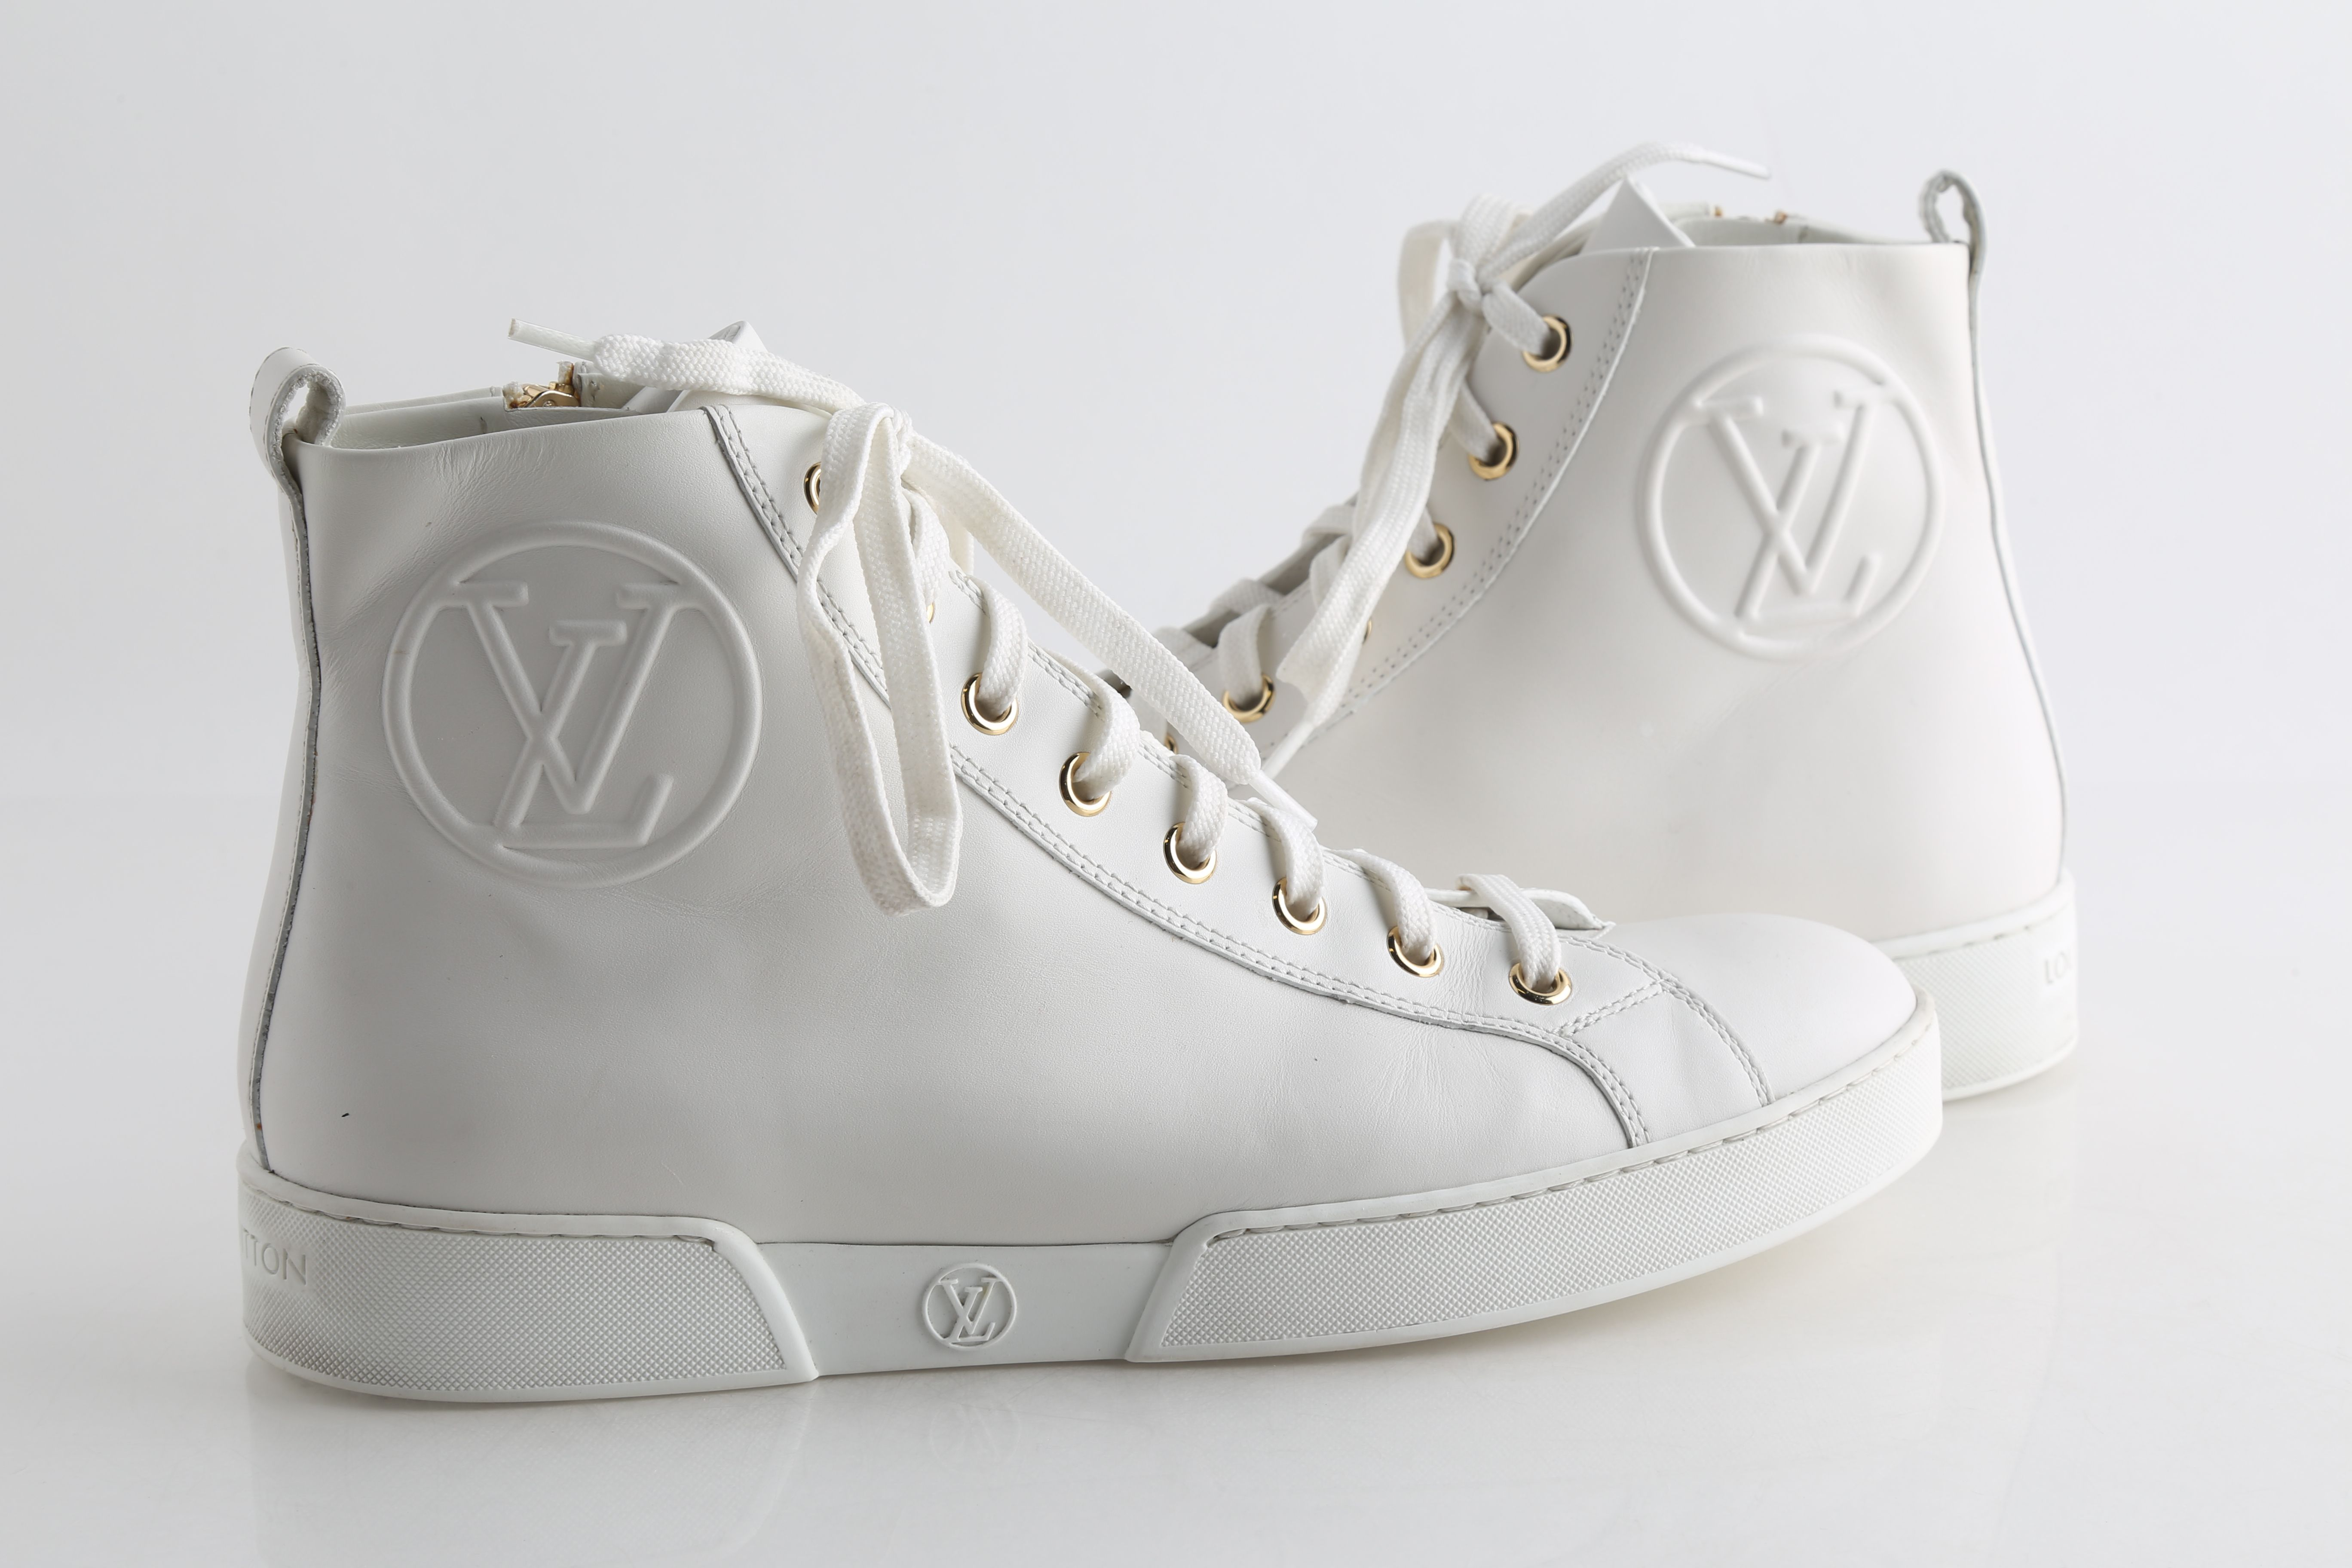 Louis Vuitton Stellar Leather Trainers